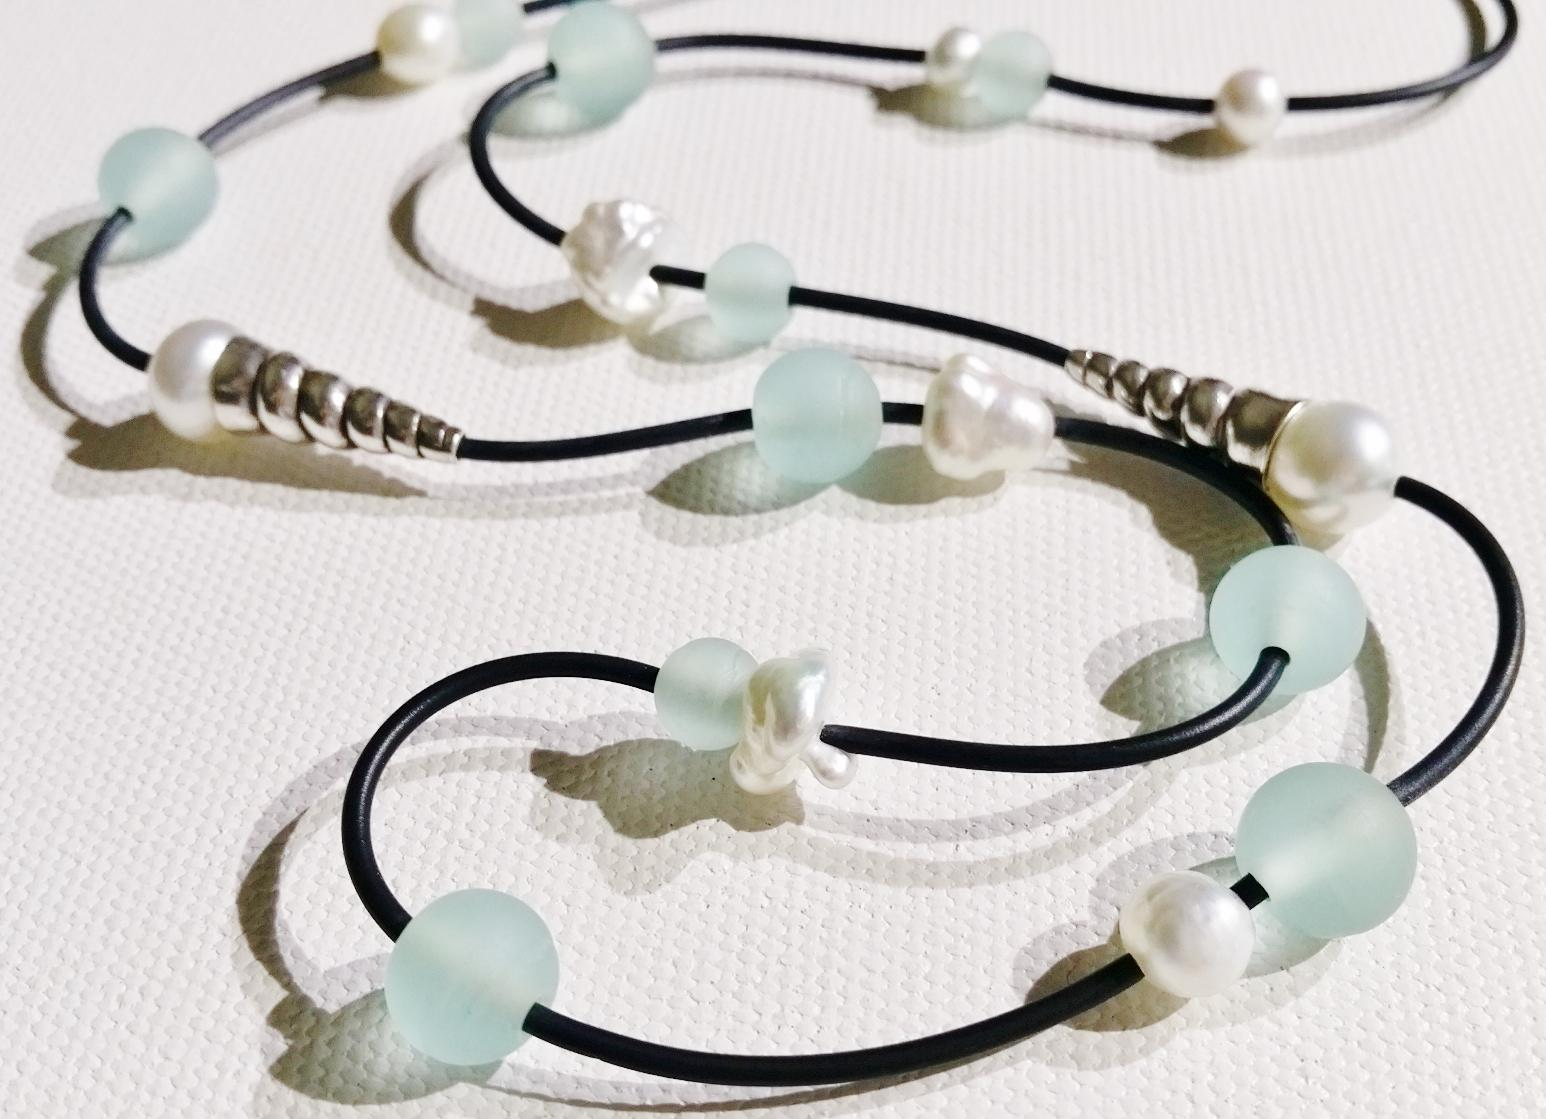 Shark Bay Colours, glass bead necklace featuring Broome pearls